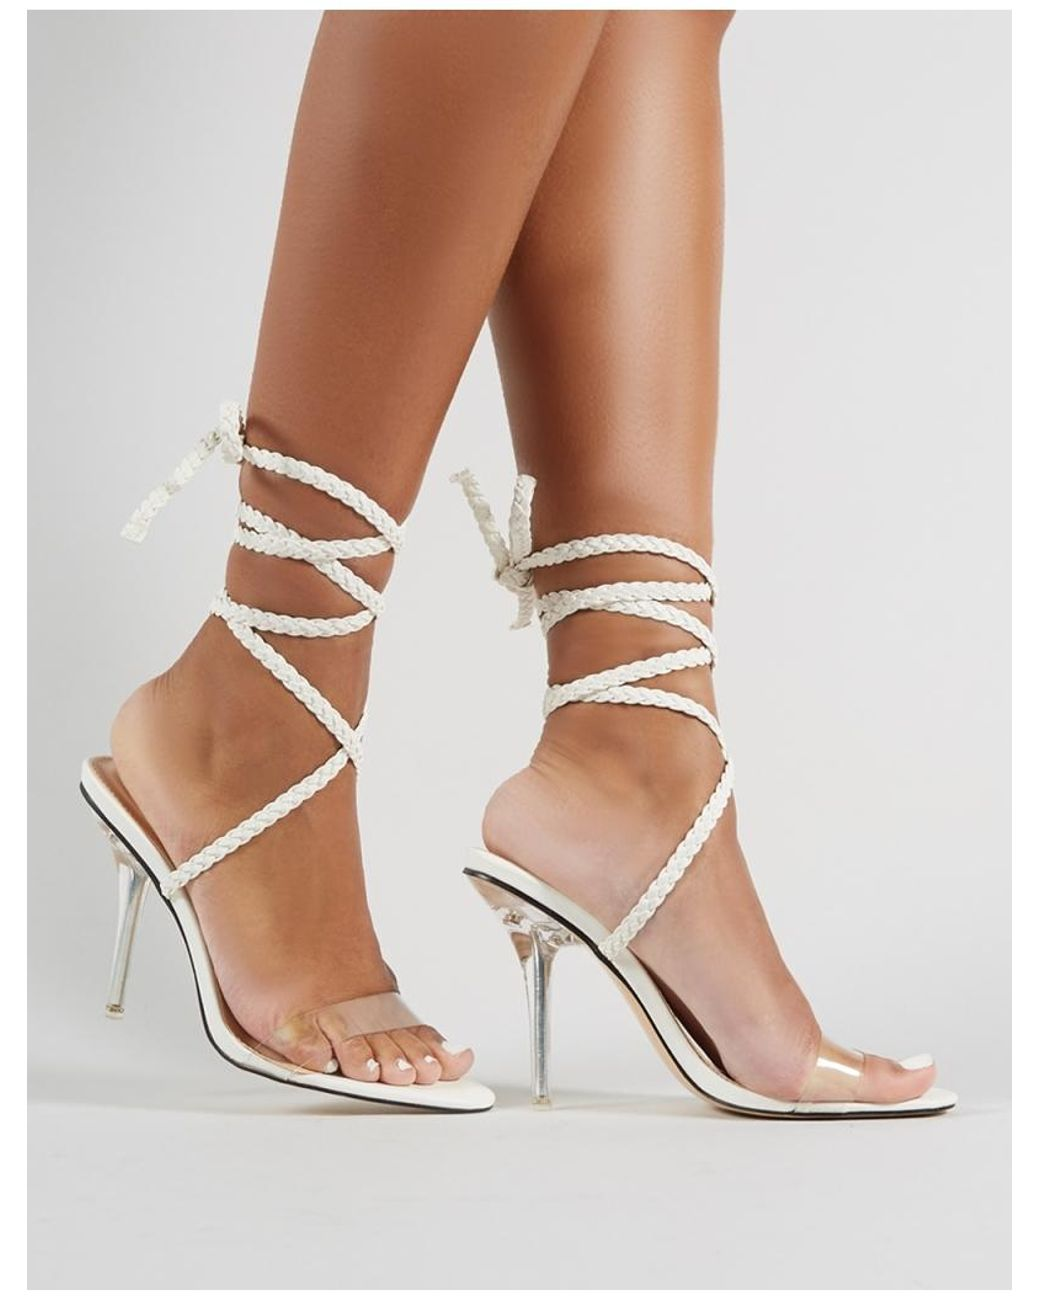 40b8738098d Lyst - Public Desire Bodega Lace Up Perspex Heels In White in White